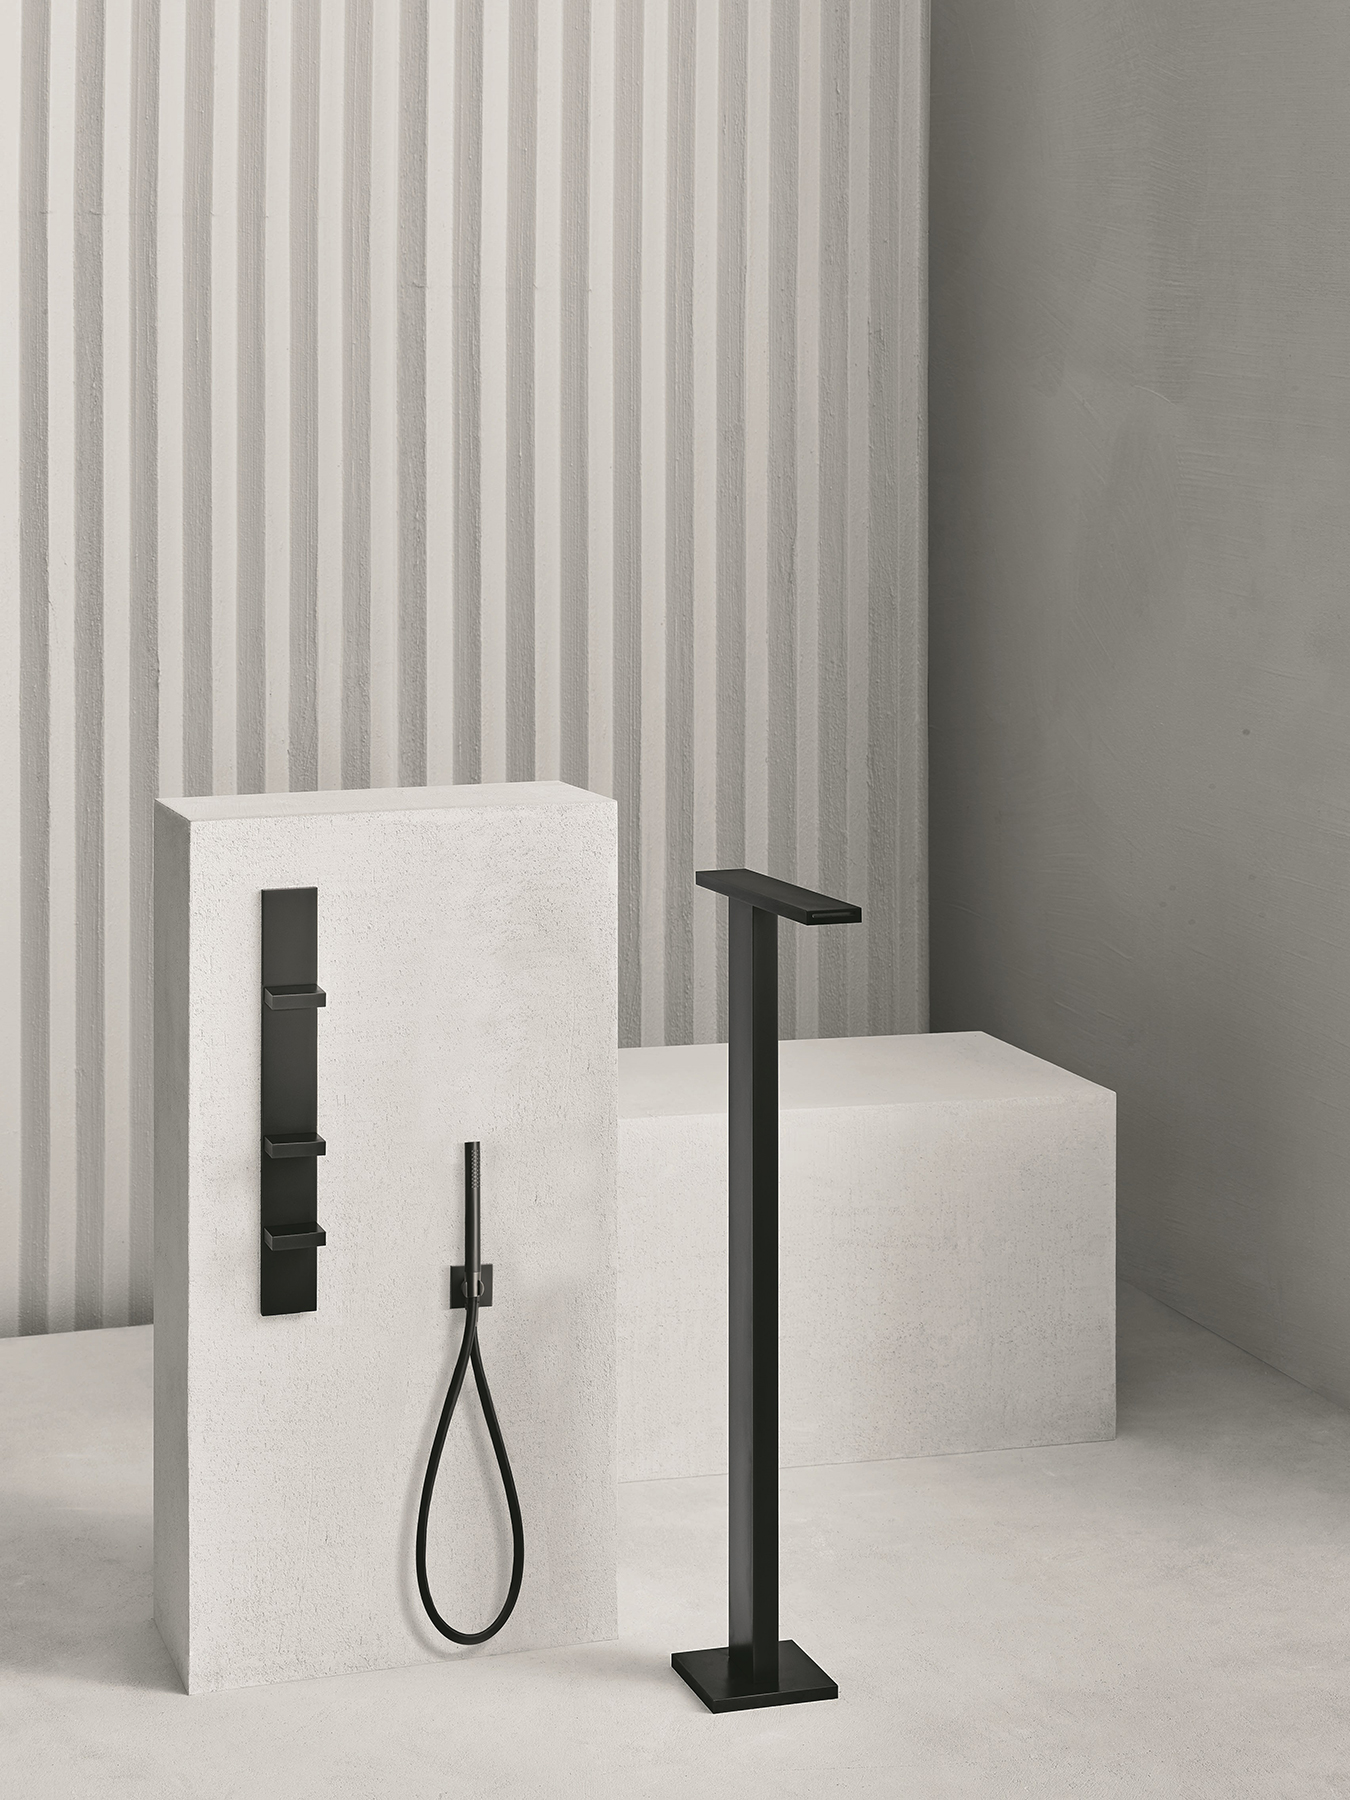 Modern AK/25 Floor Mounted Tub Filler with Wall Mounted Mixer with 2 Way Diverter